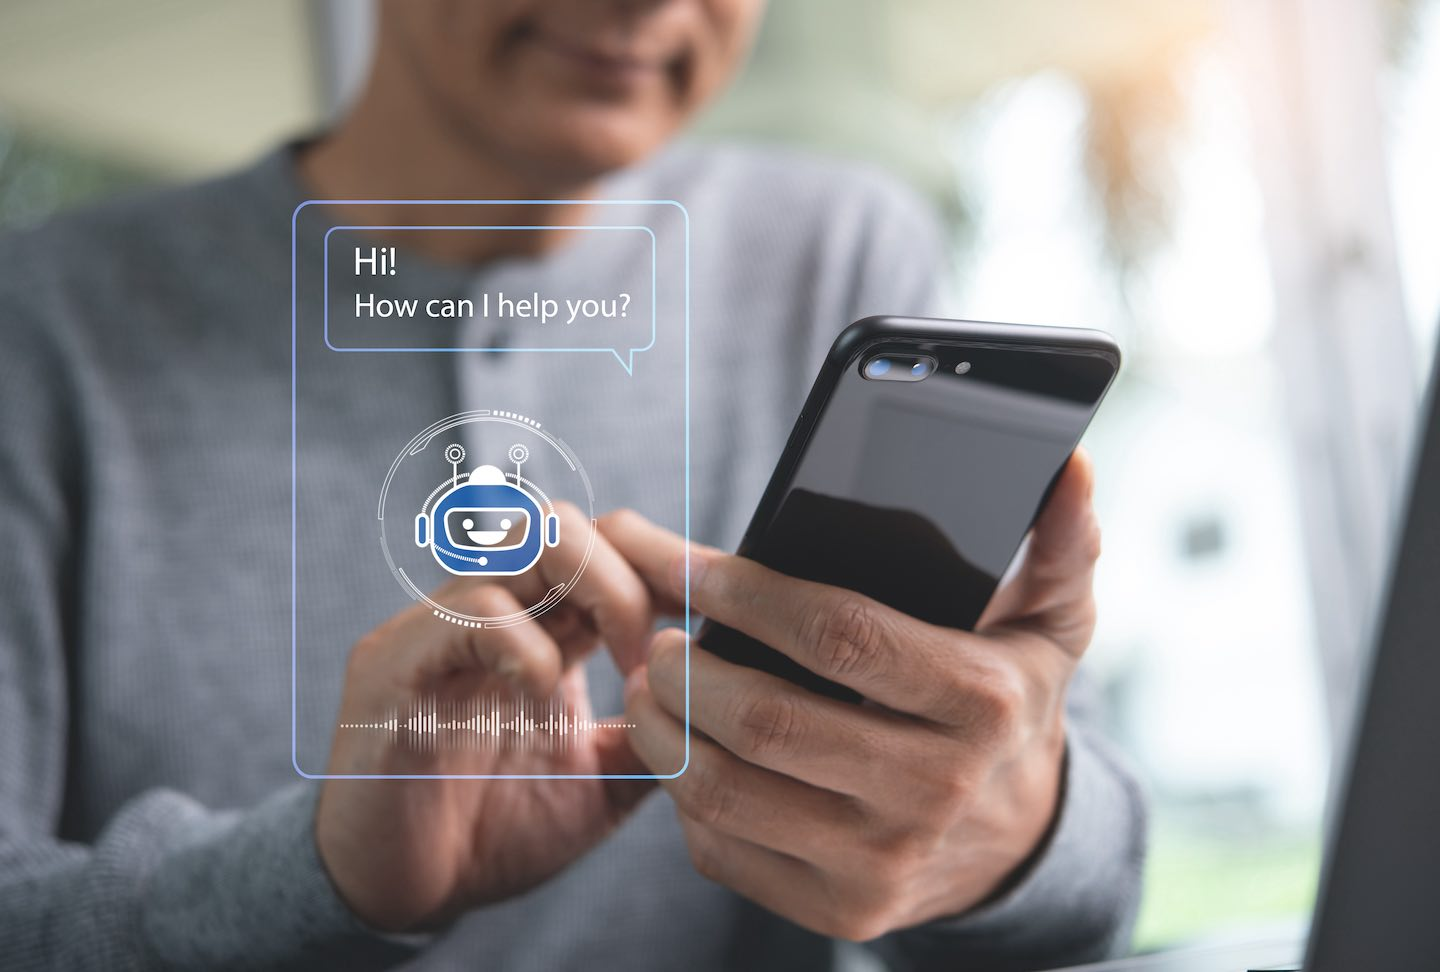 A chatbot offers the possibility to respond quickly to requests